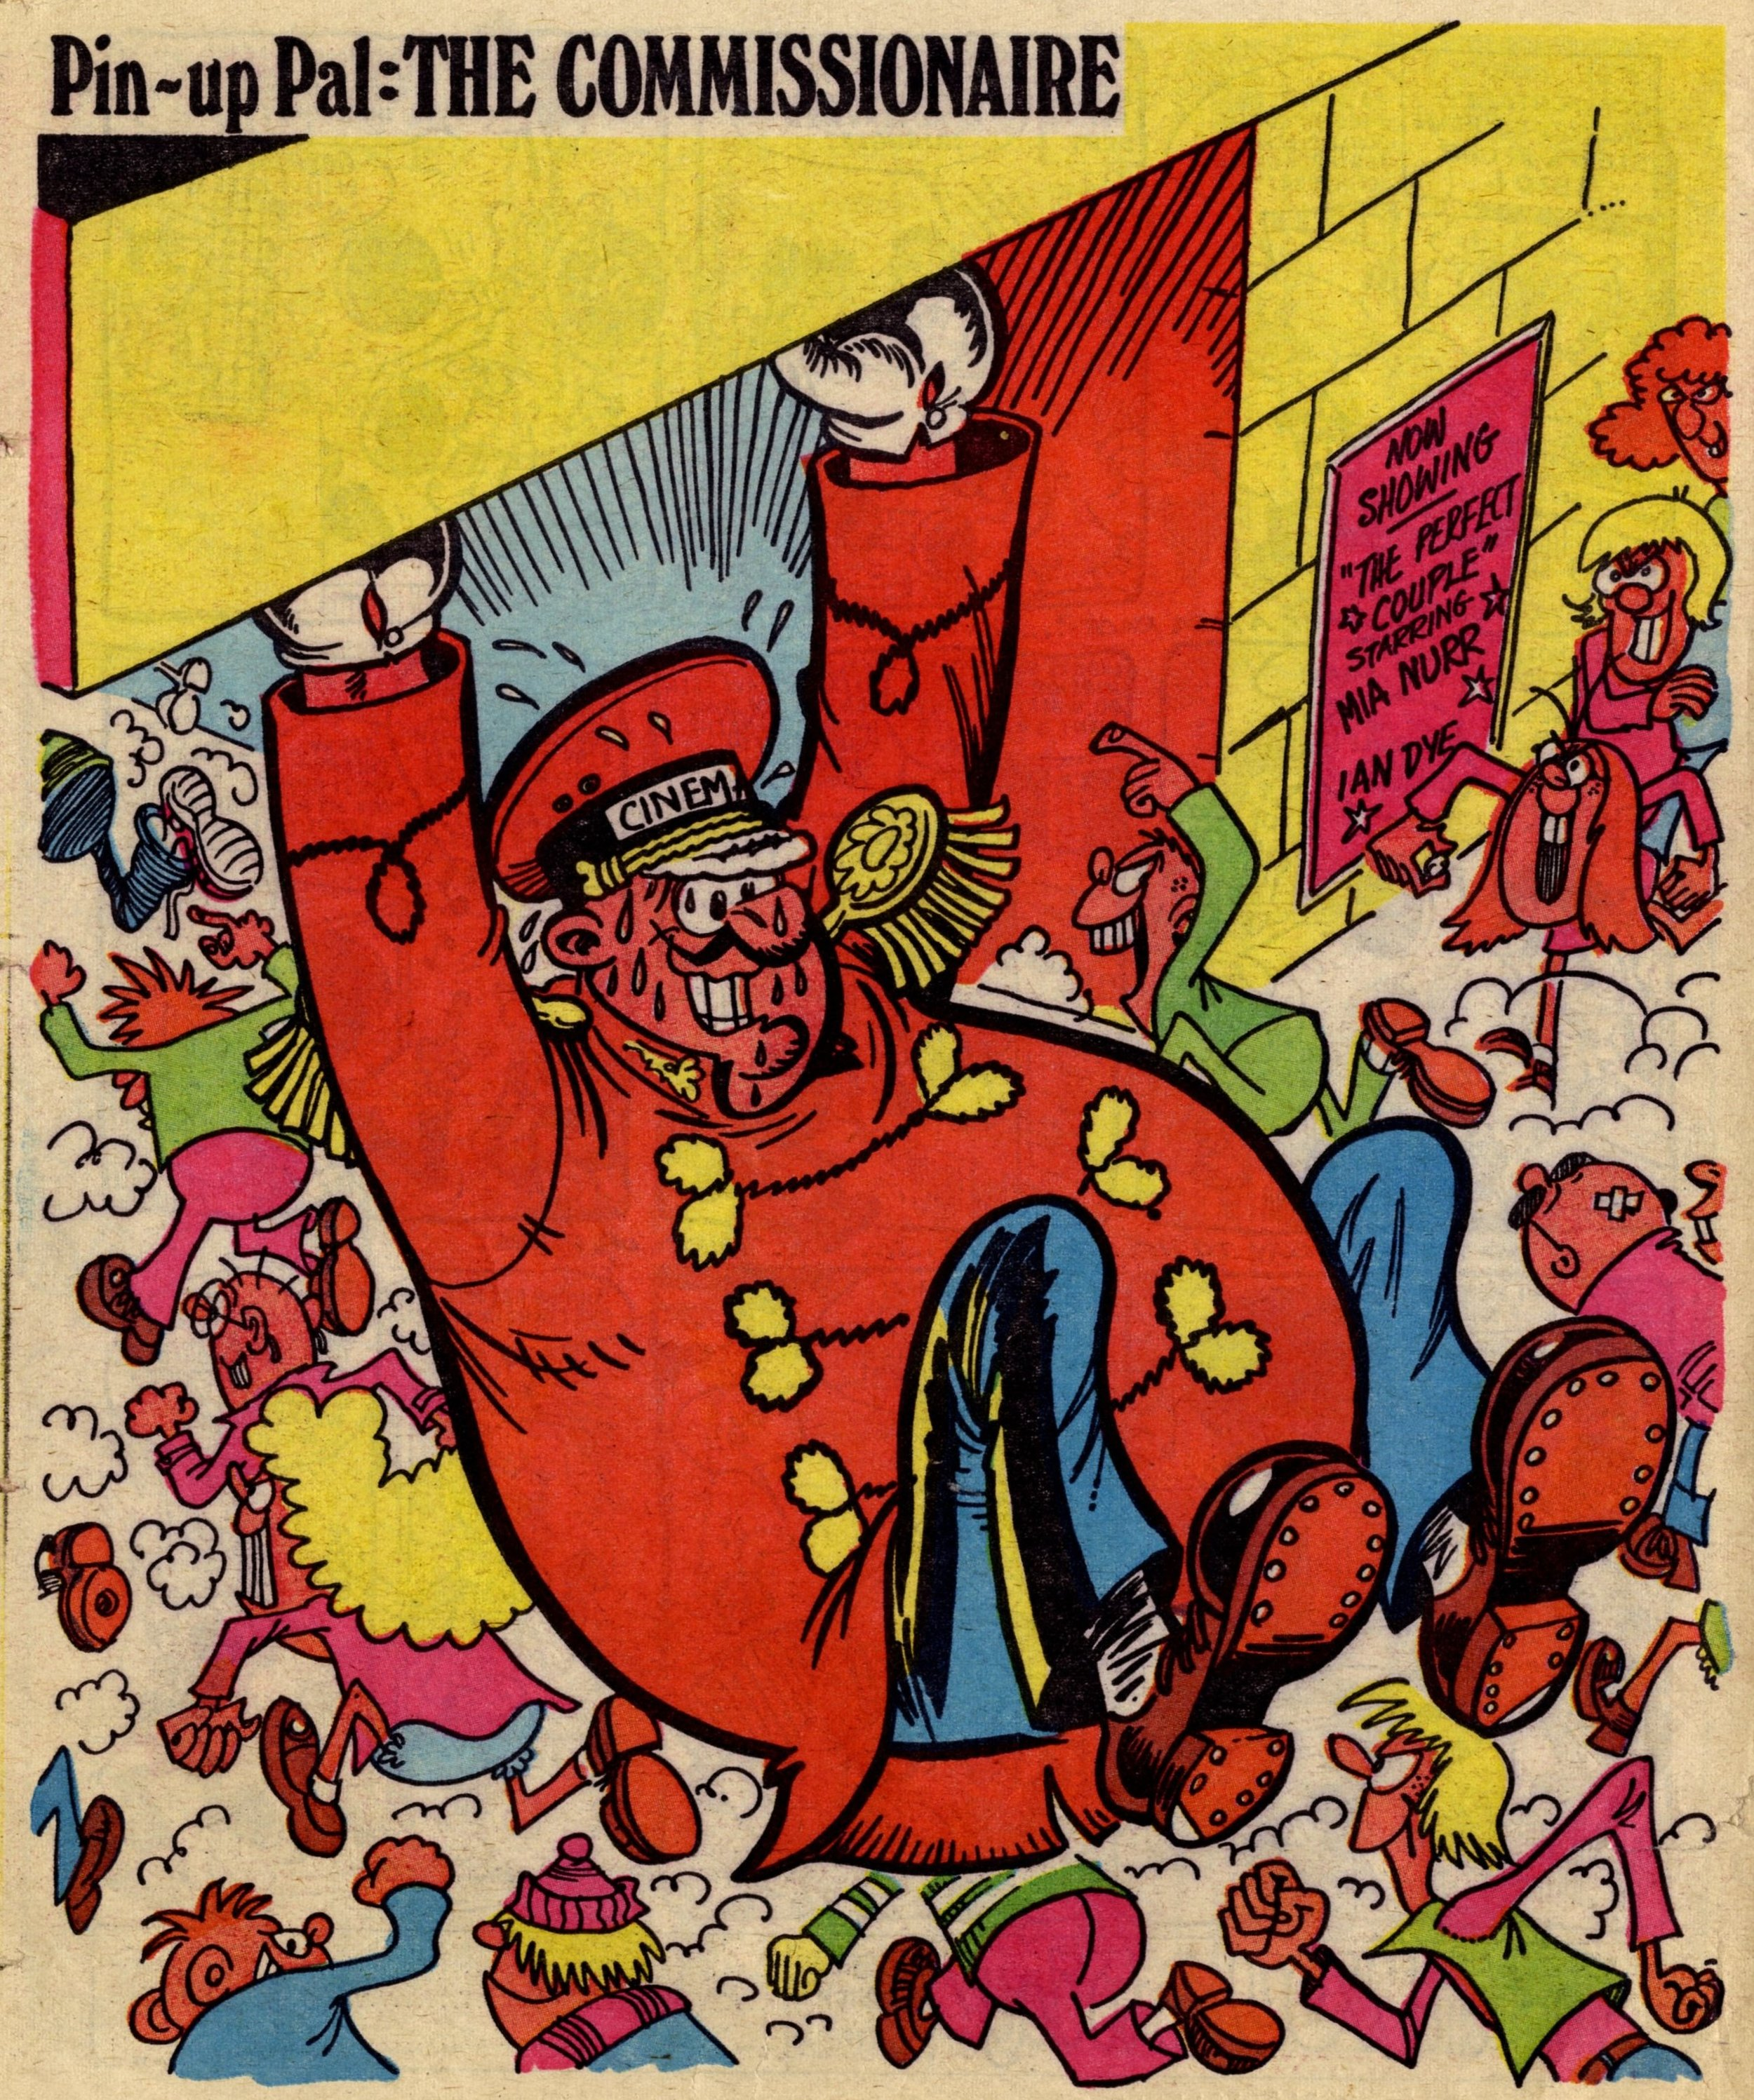 Pin-up Pal: The Commissionaire (artist Frank McDiarmid), 17 March 1979